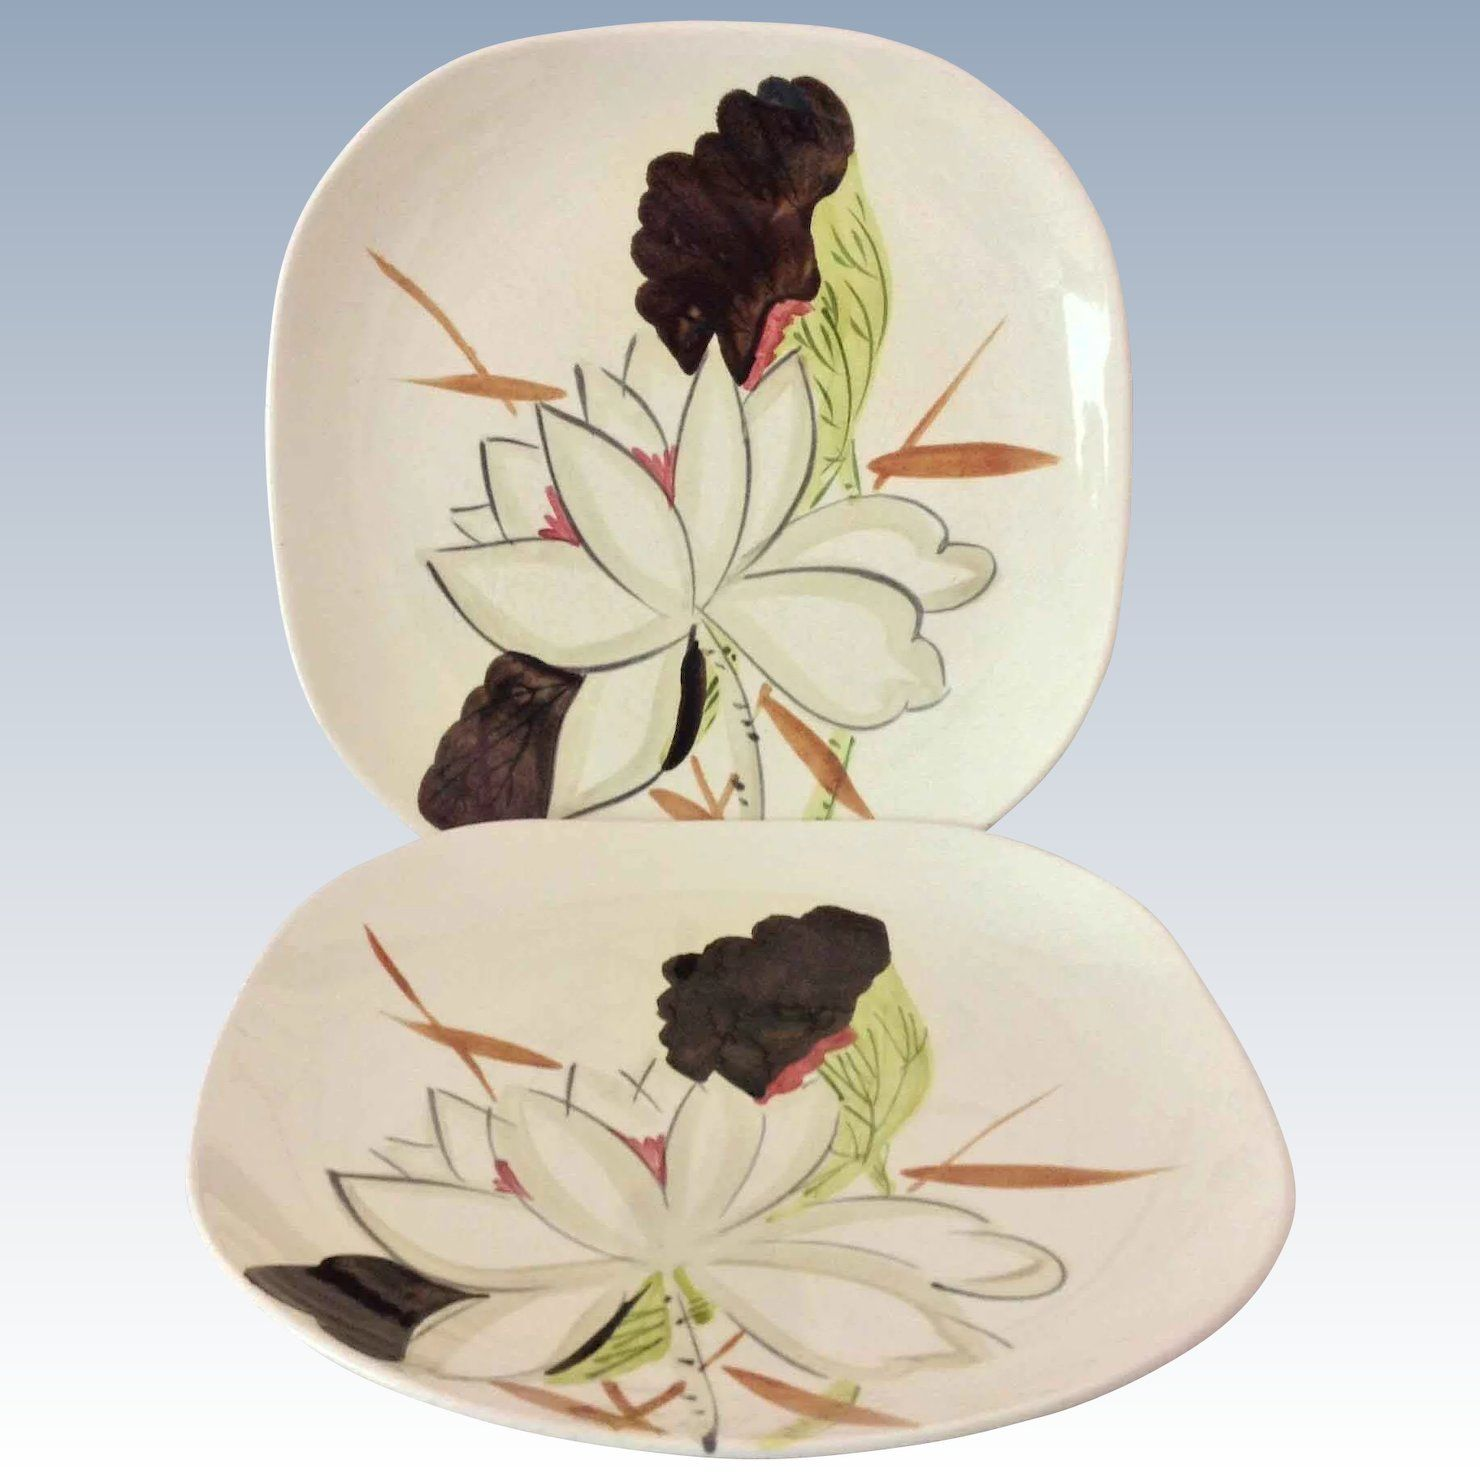 Red Wing Lotus Concord Shape Dinner Plates - Set of Two : lotus flower dinnerware - pezcame.com